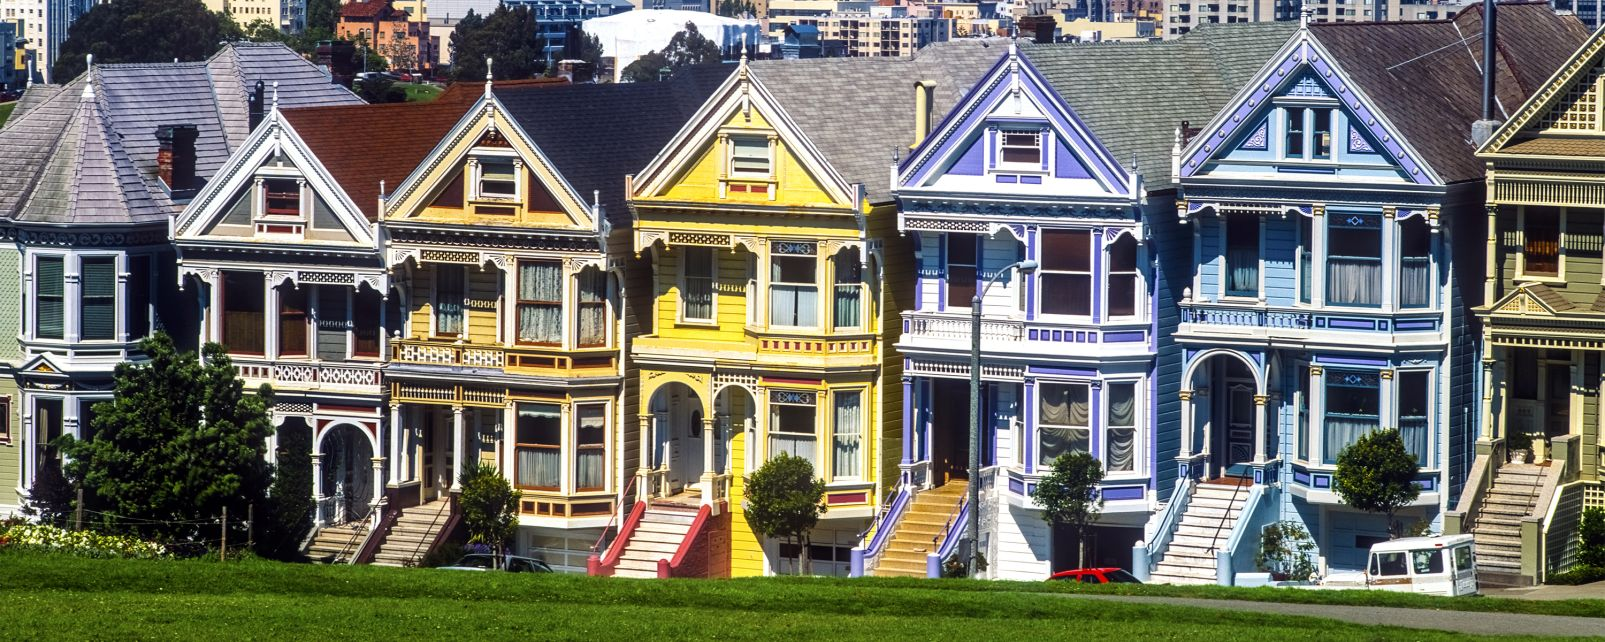 Les maisons victoriennes de san francisco californie for Acheter maison usa californie